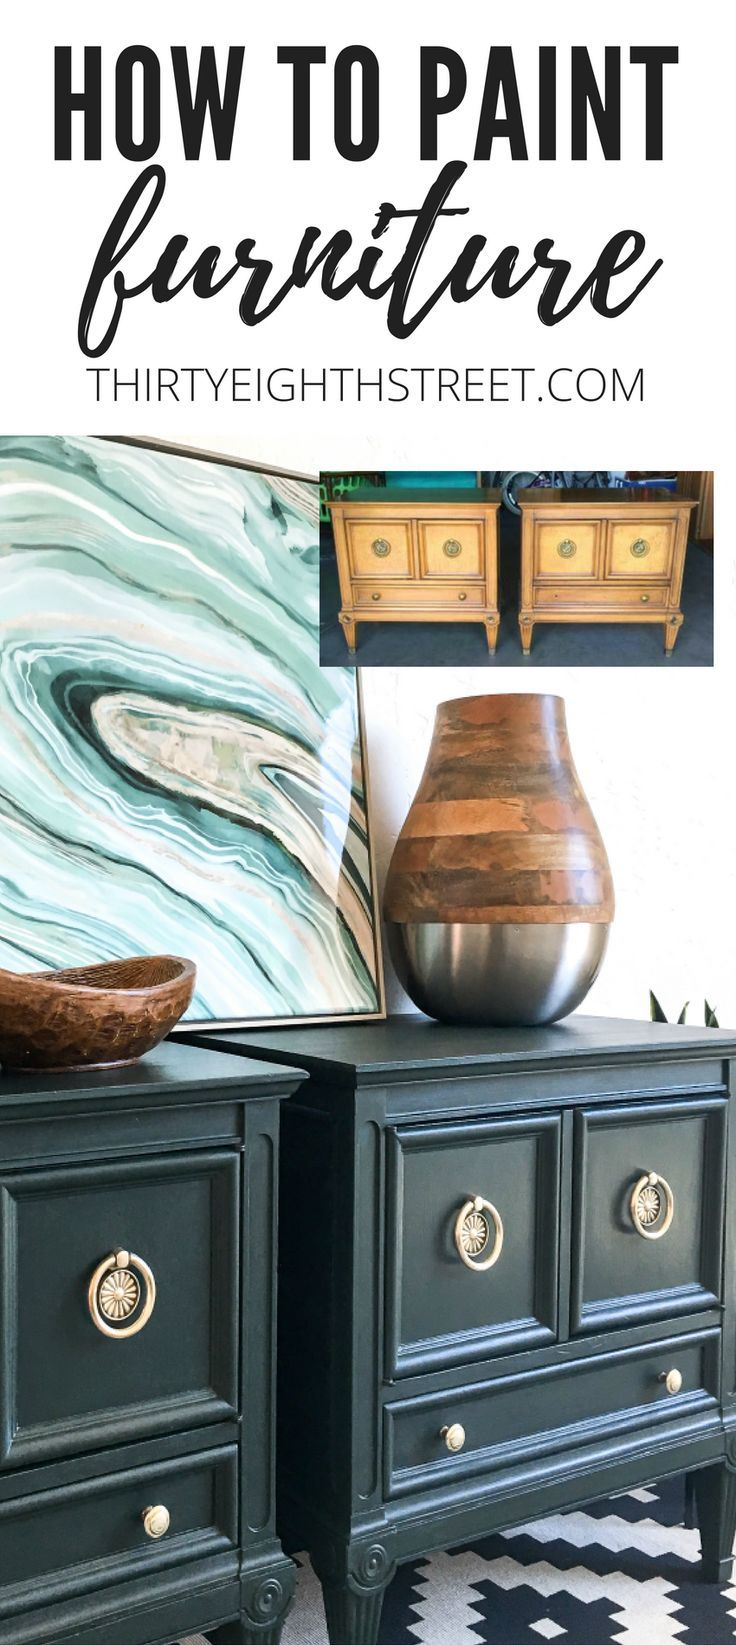 How To Paint Furniture With Pure & Original Paint. Refinishing Furniture Tips an...